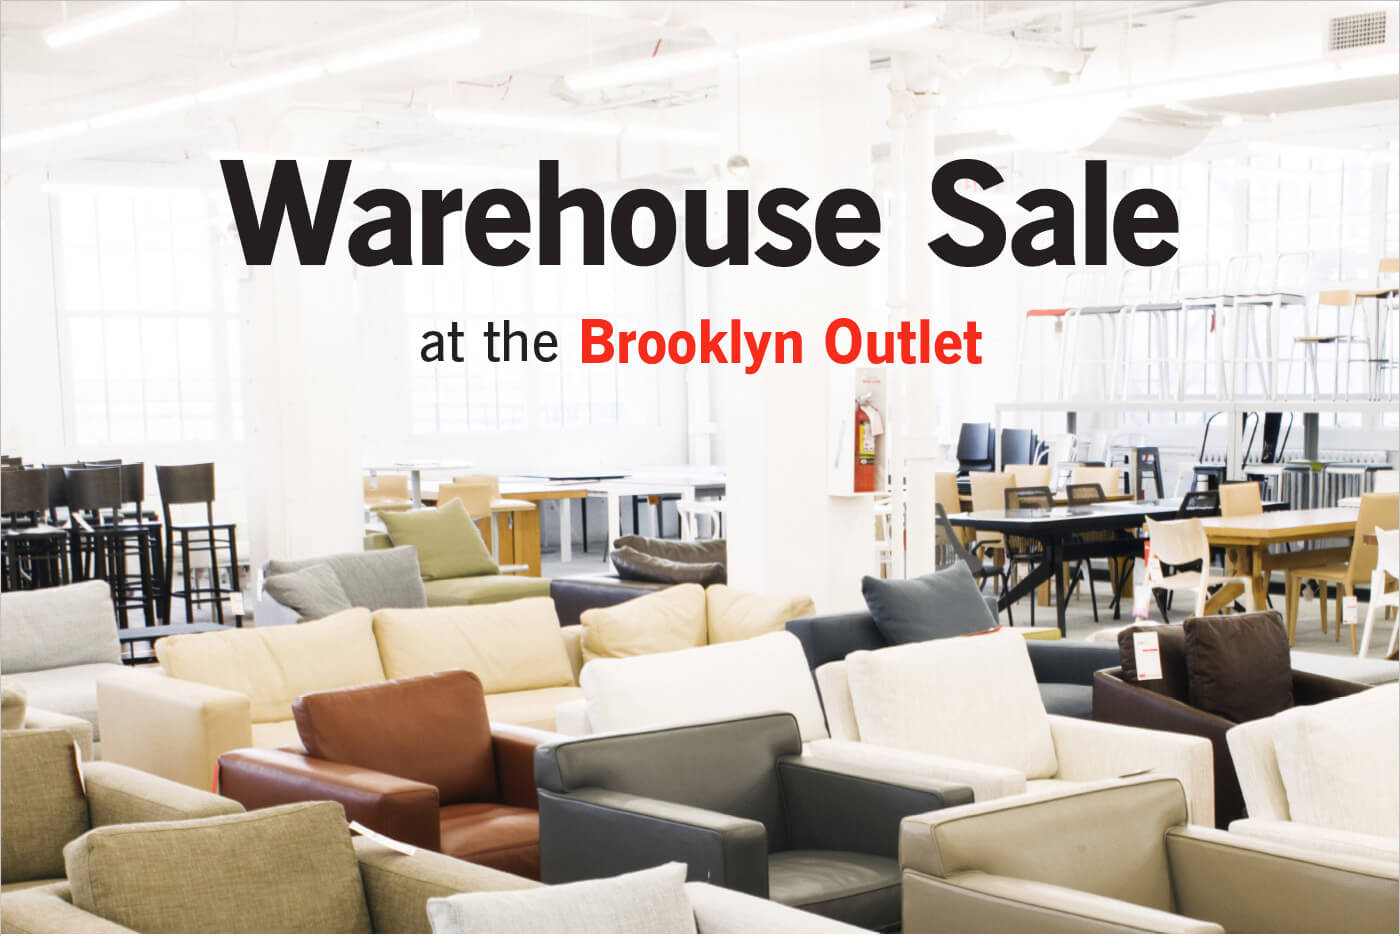 Warehouse Sale at the Brooklyn Outlet